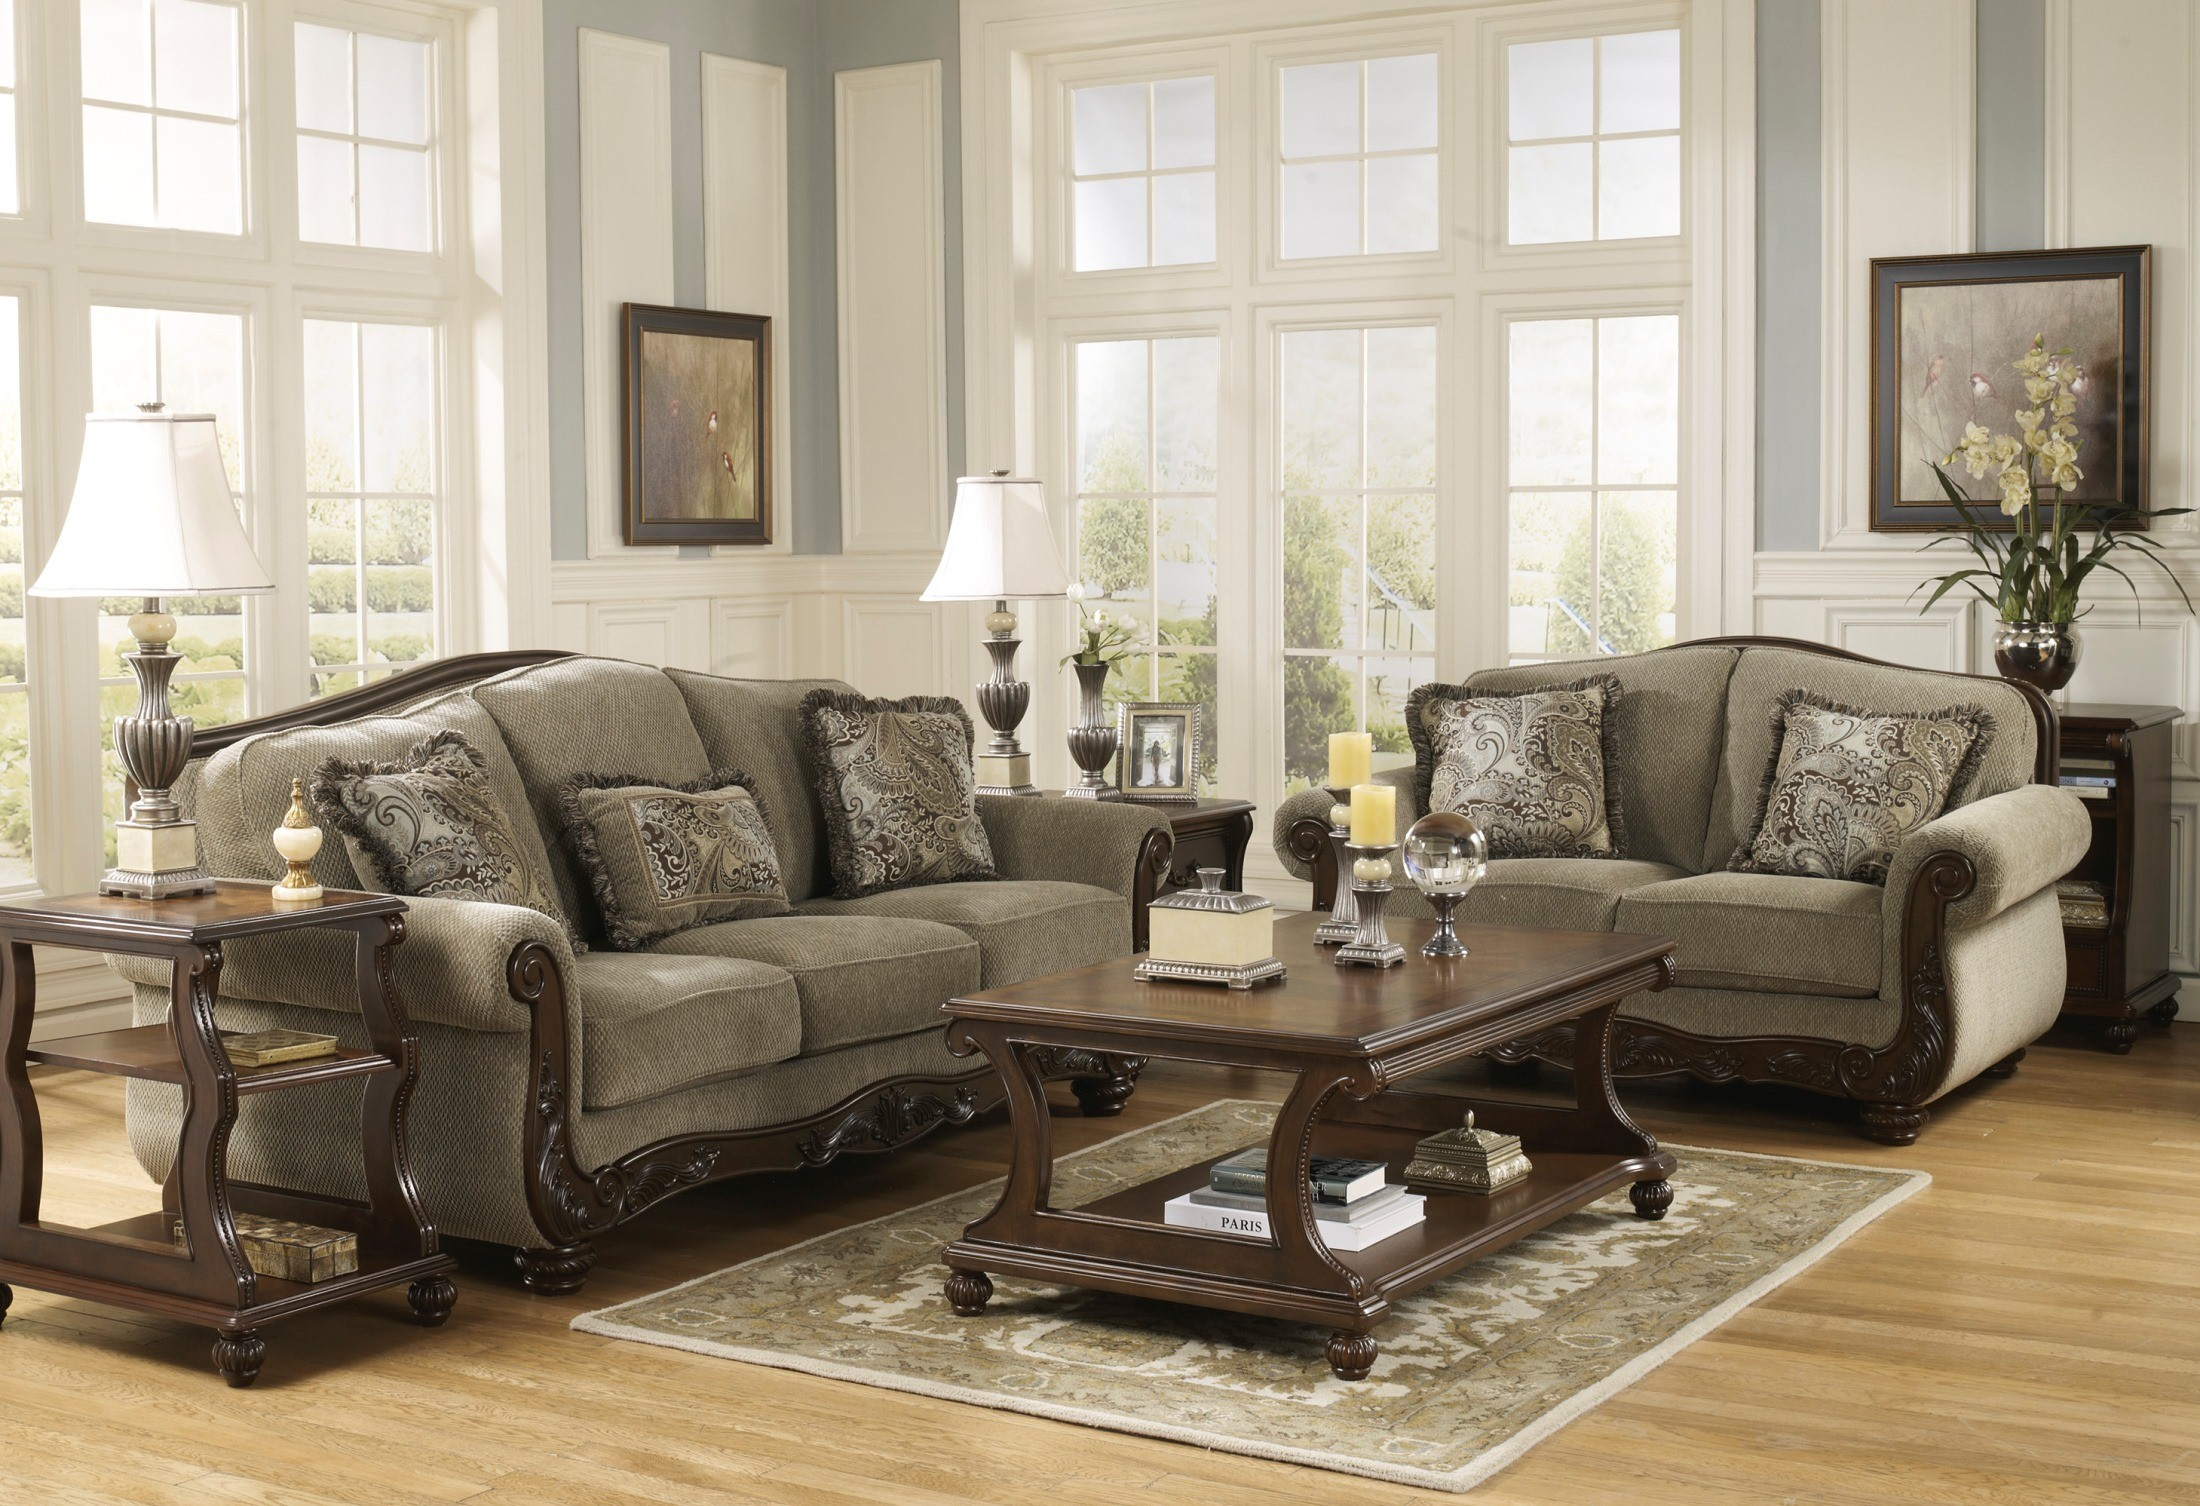 Martinsburg Meadow Sofa From Ashley 5730038 Coleman